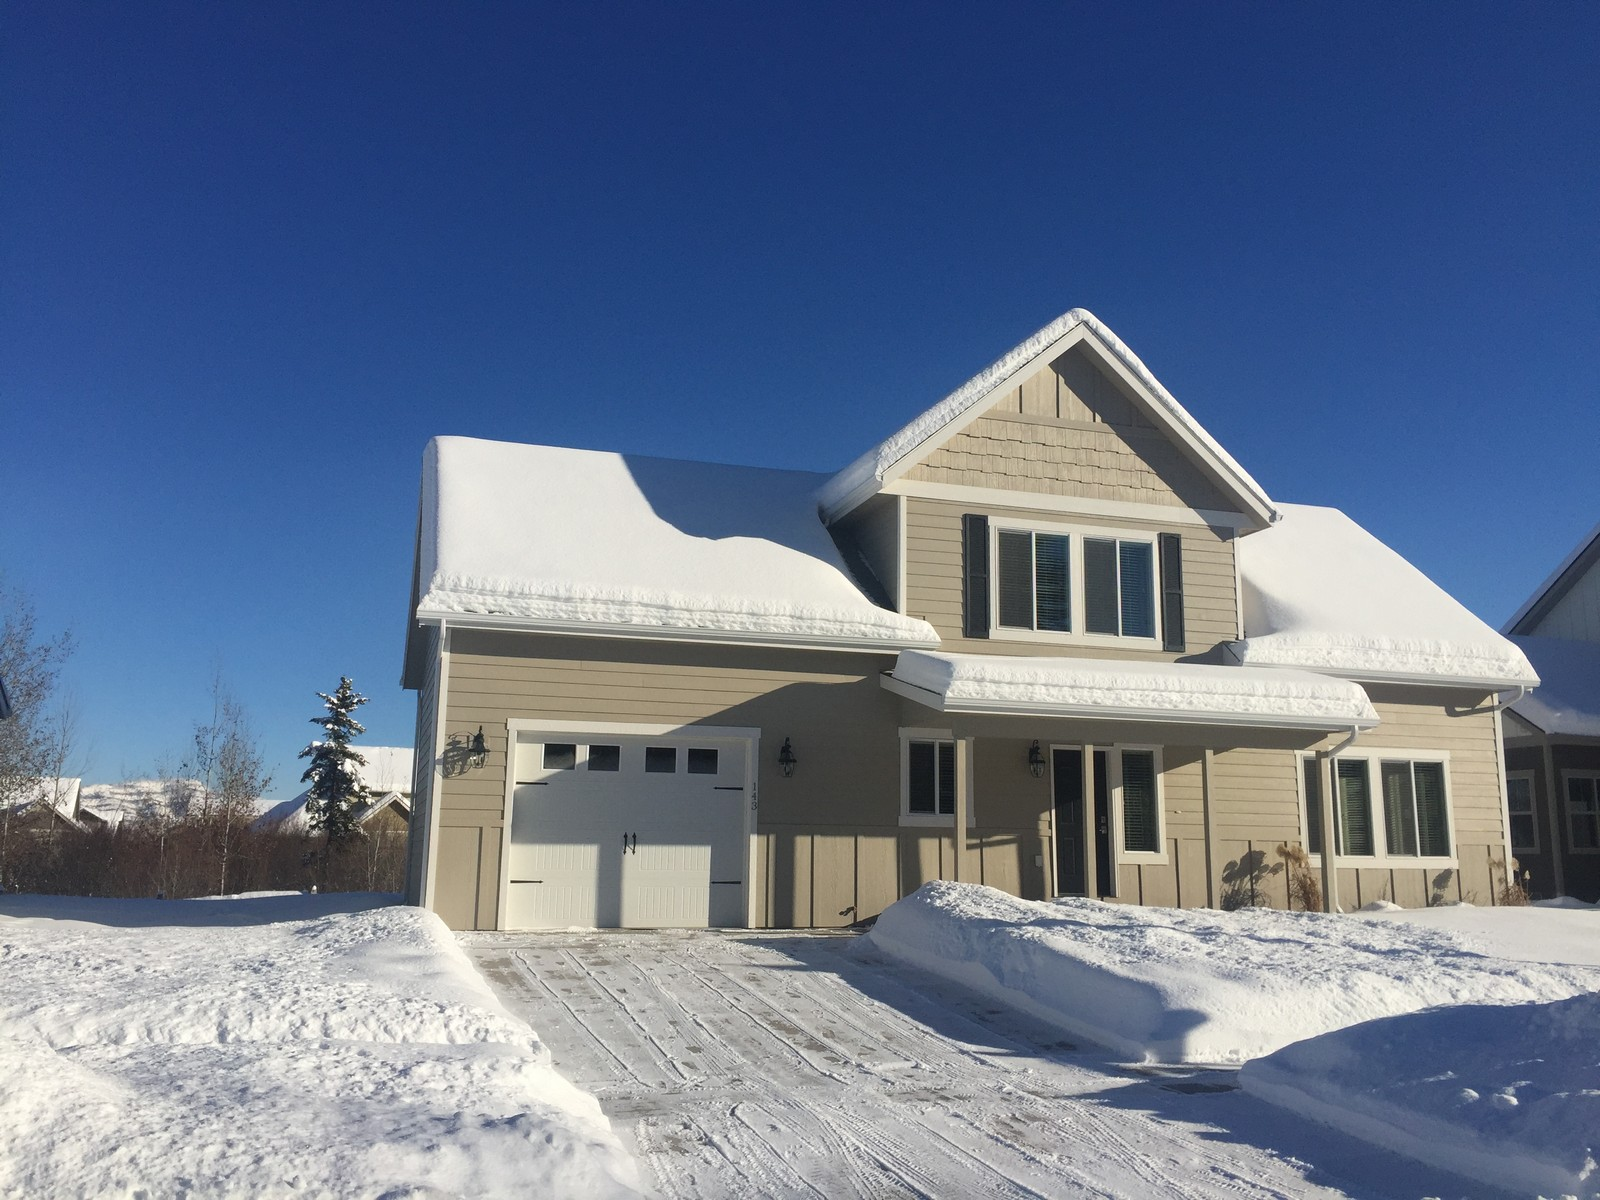 Single Family Home for Sale at 143 Brimstone Dr , Whitefish, MT 59937 143 Brimstone Dr Whitefish, Montana, 59937 United States